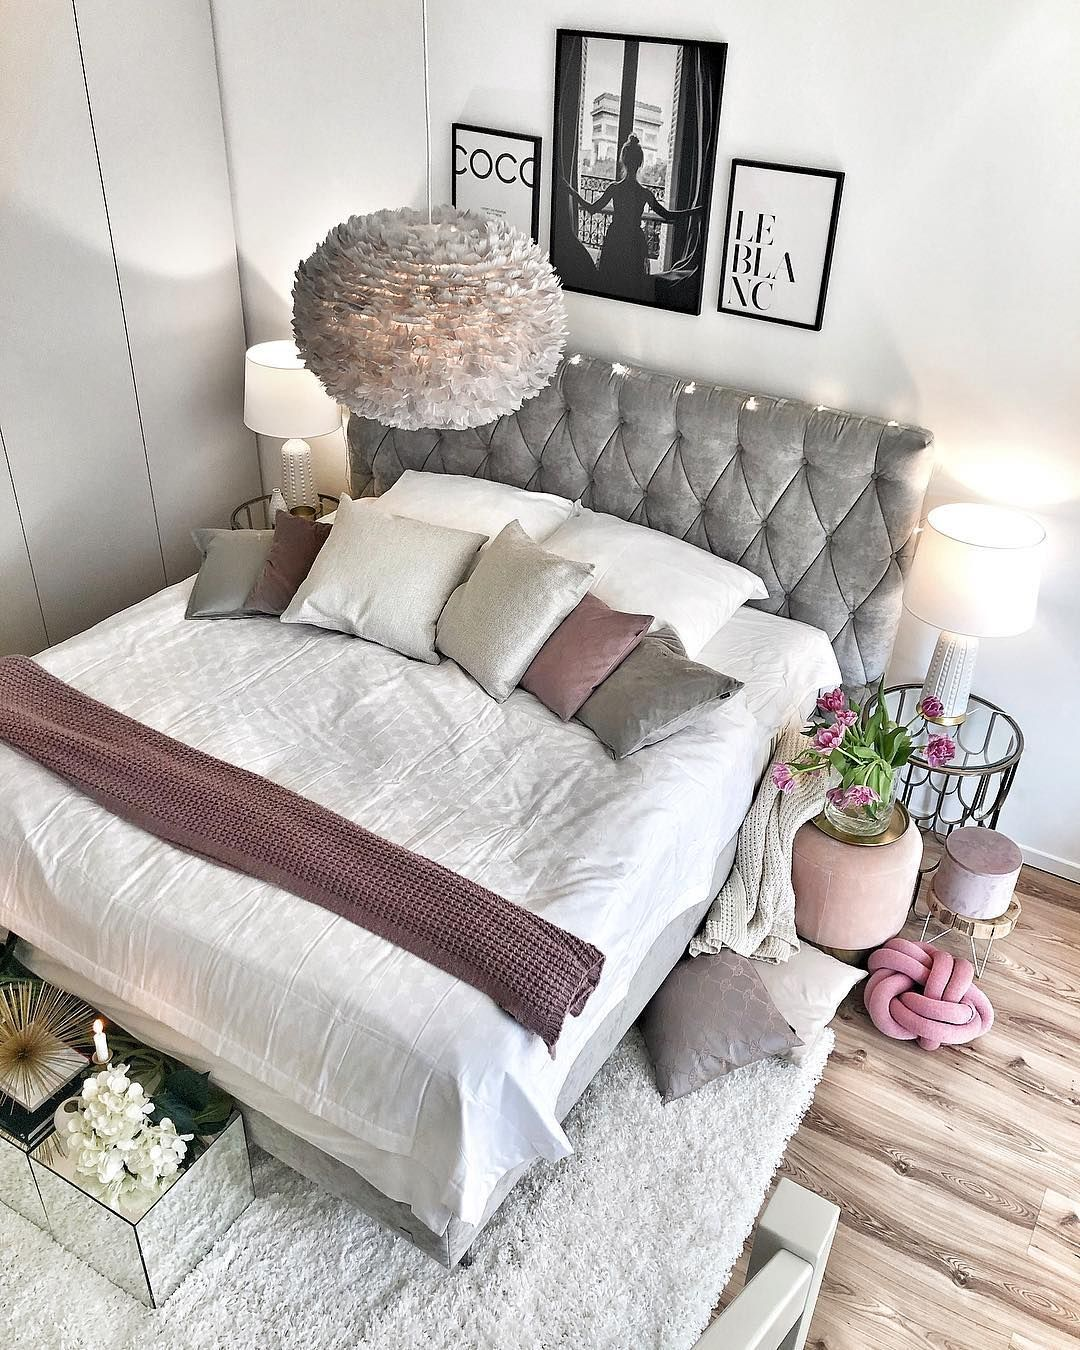 Romantisch Eingerichtetes Schlafzimmer Mit Luxus Boxspringbett In Grau Lampe Mit Federn Kissen In Den Farben Weiß Beige B Decor Home Decor Bedroom Makeover